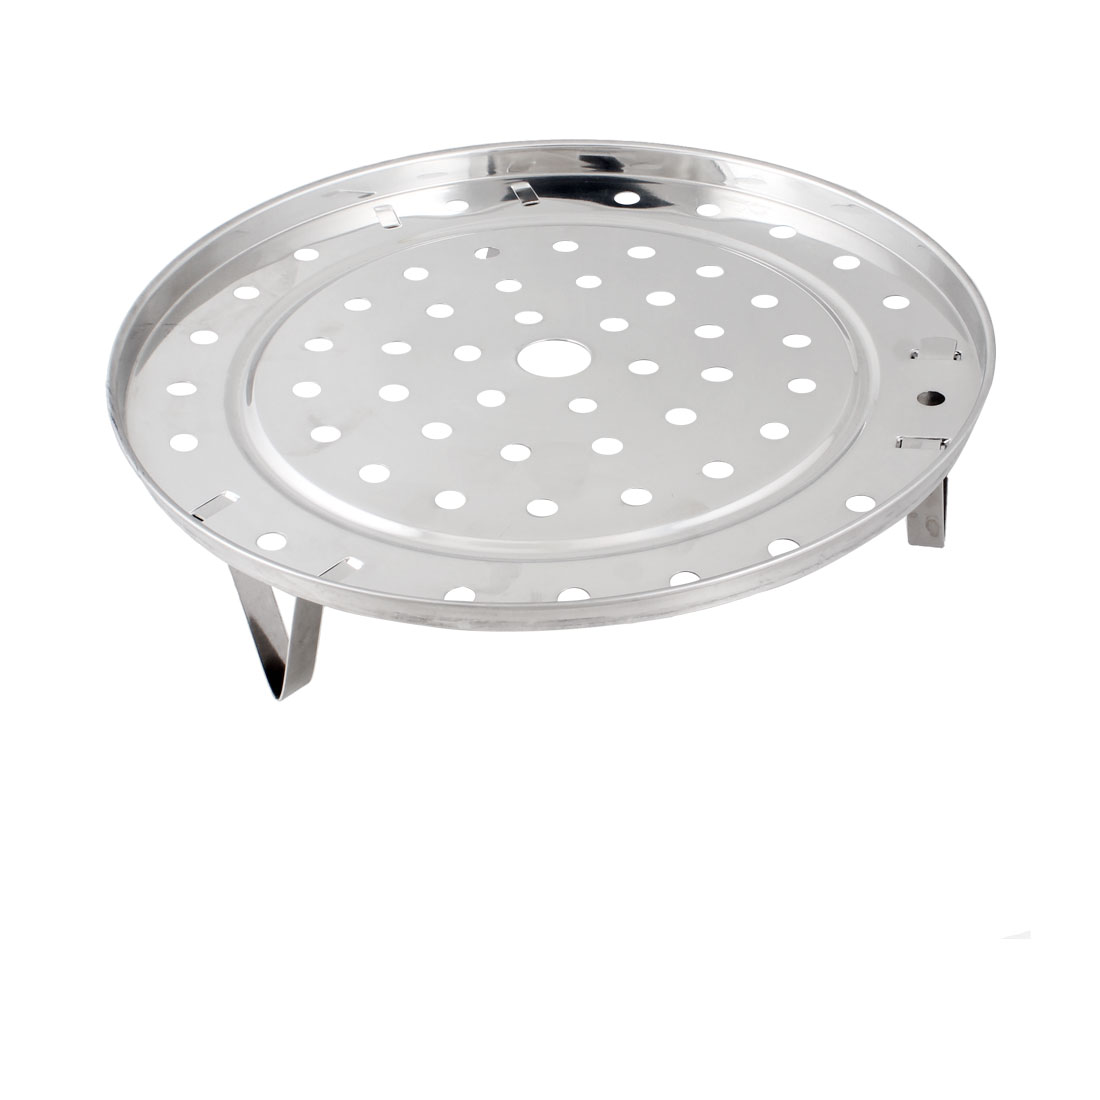 "Kitchen Cooking Stainless Steel 8.5"" Diameter Steaming Steamer Rack"